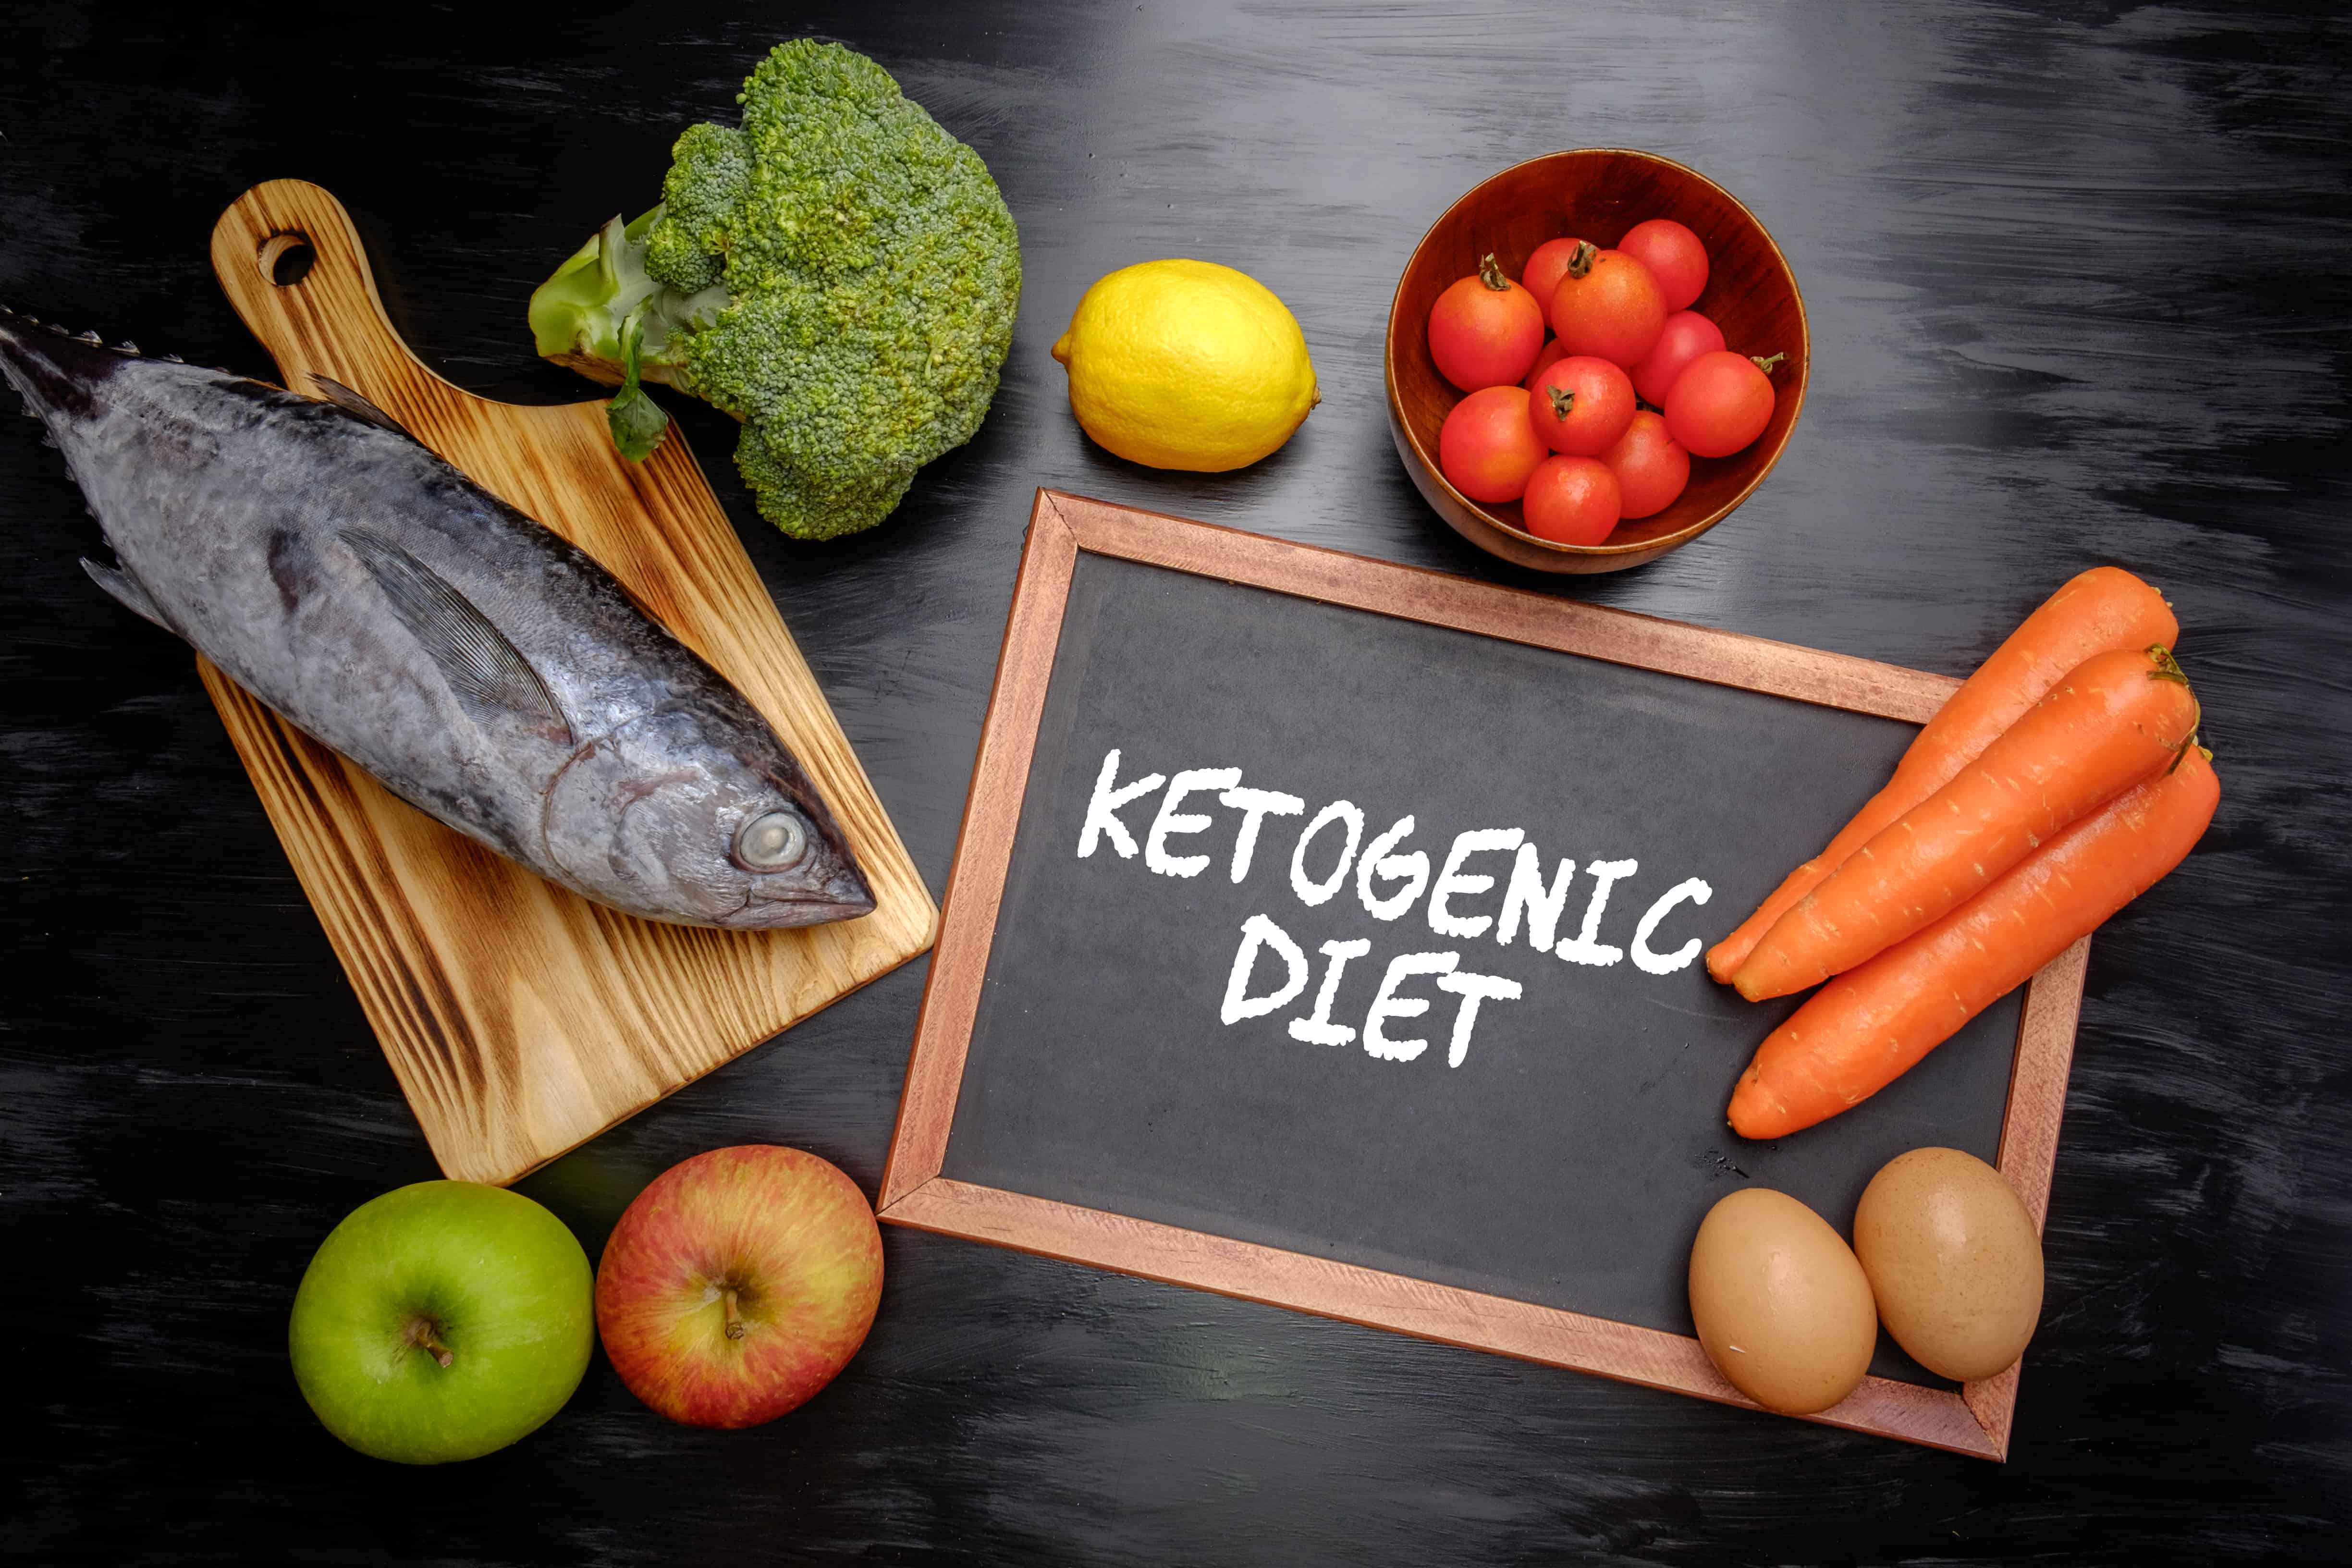 Ketogenic diets as an adjuvant cancer therapy: History and potential mechanism